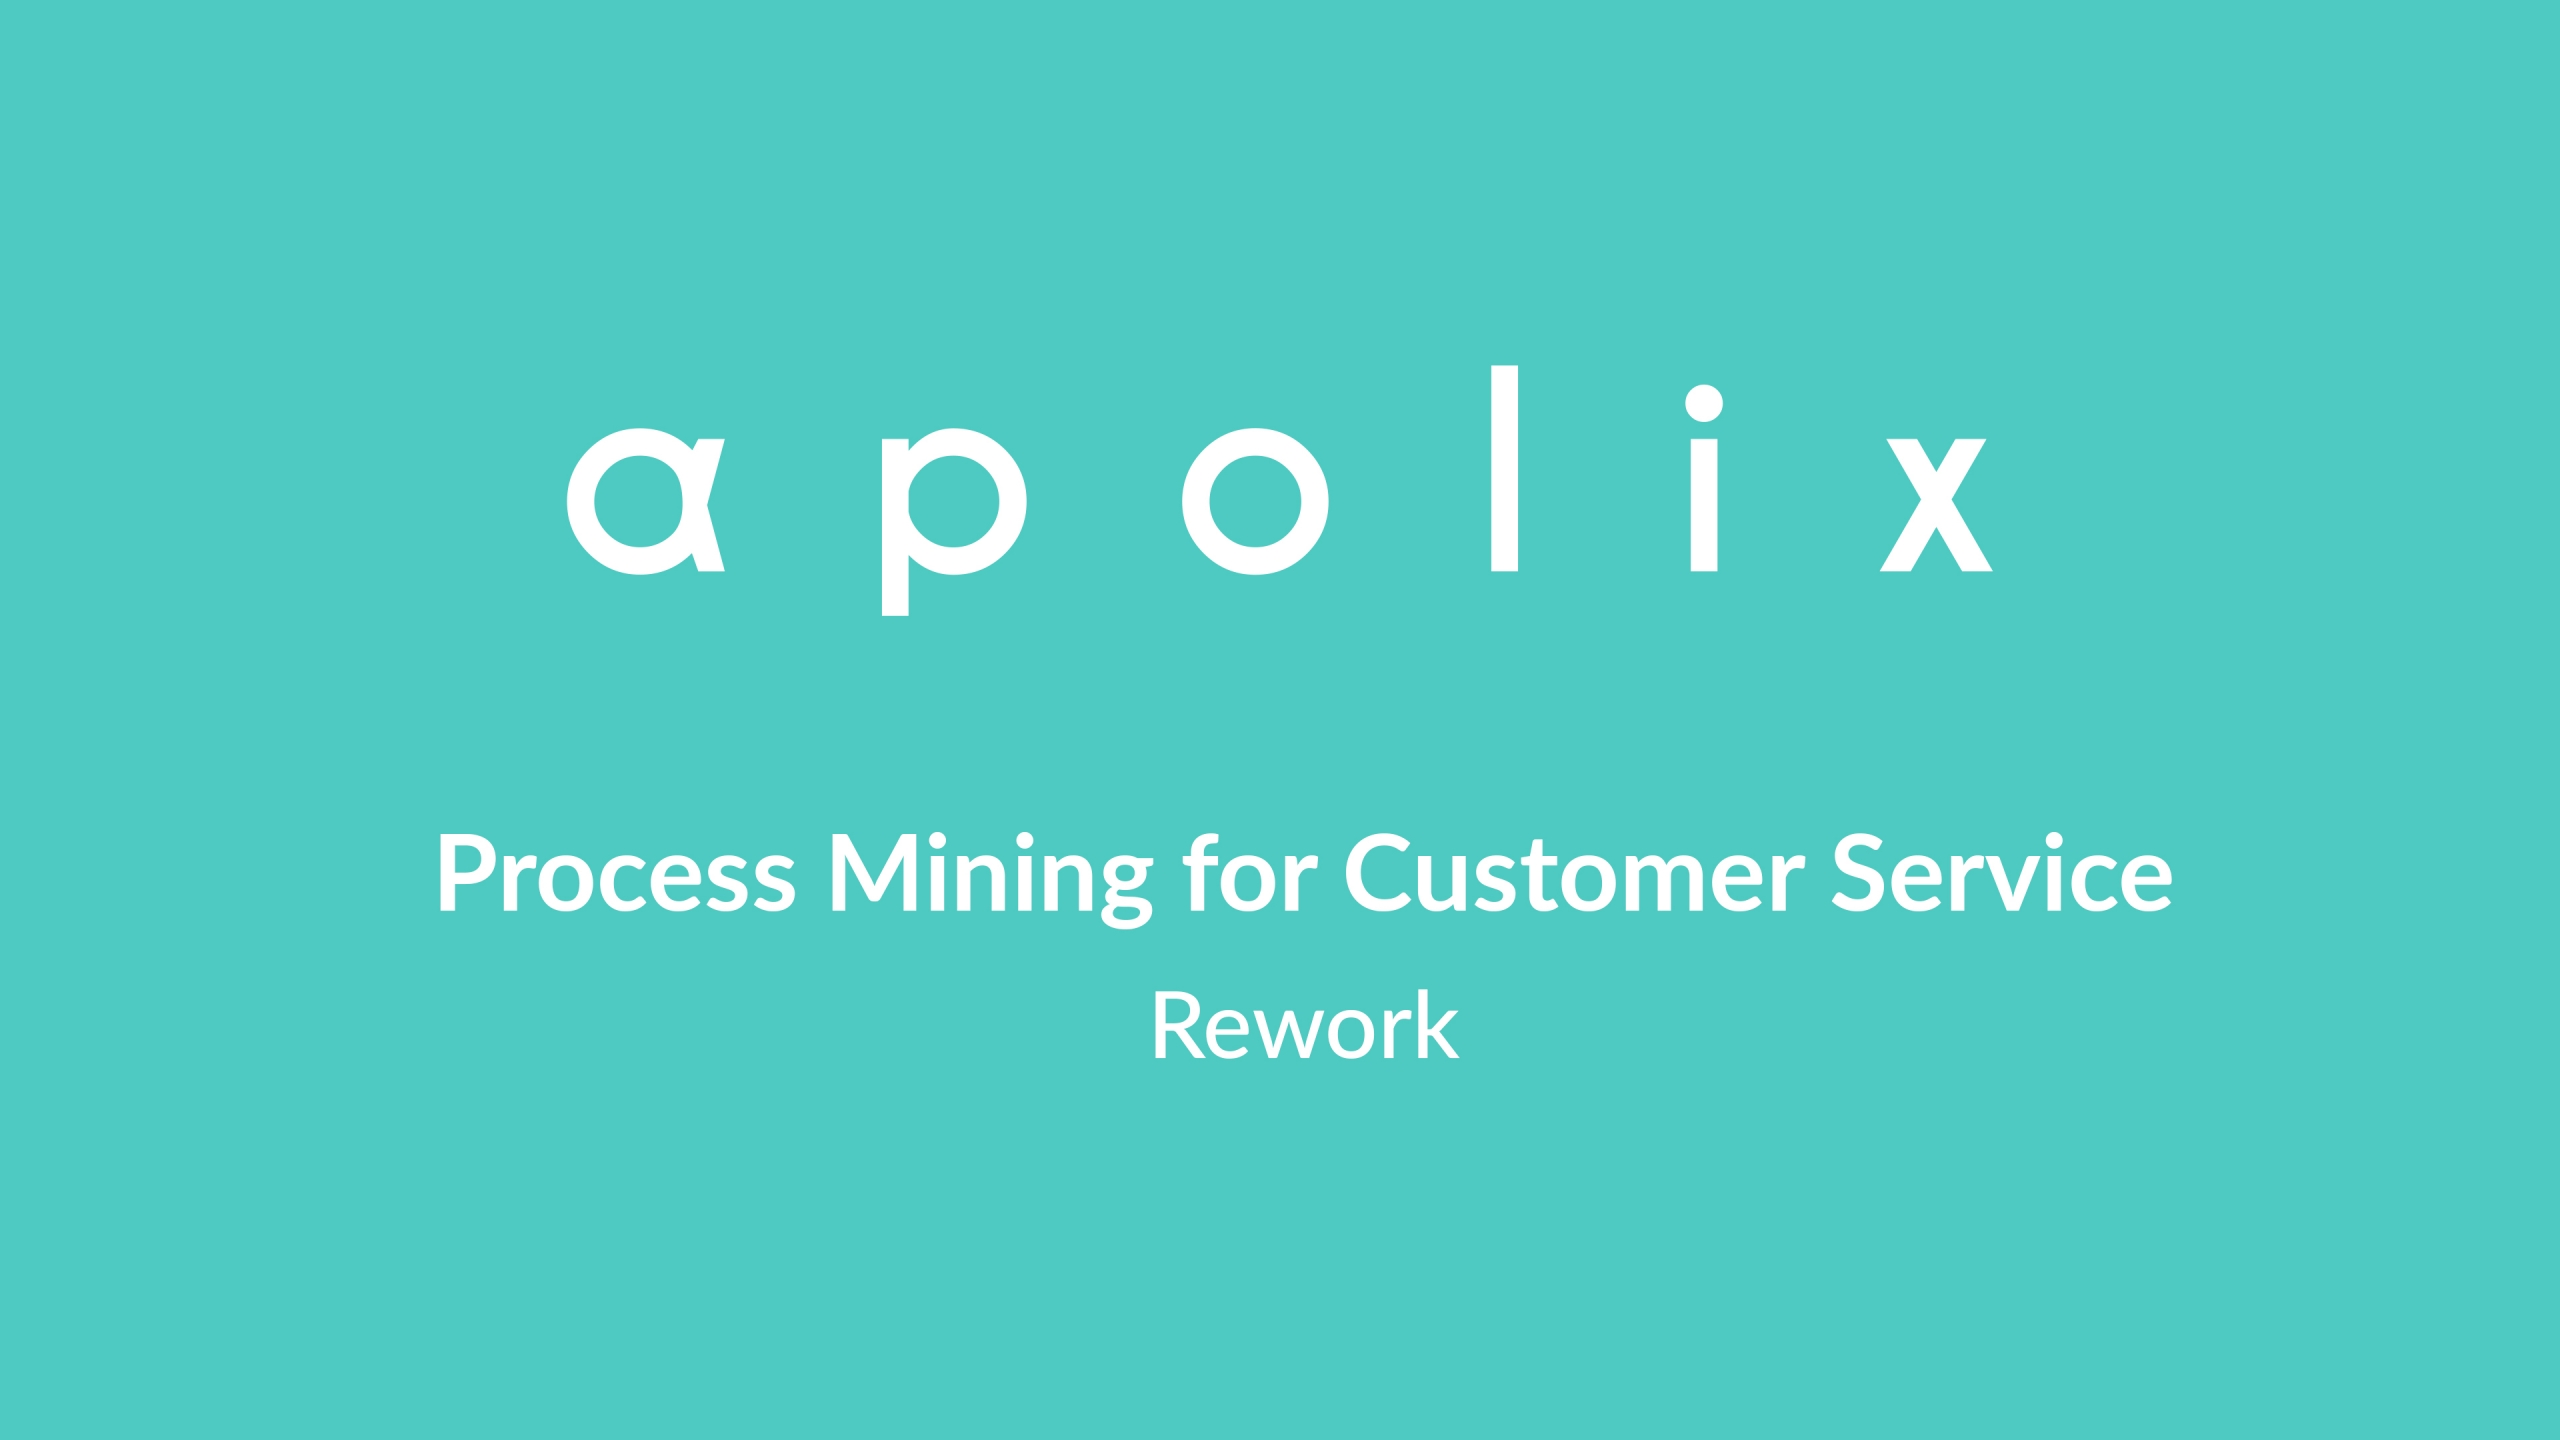 Process mining for Customer Service - pic